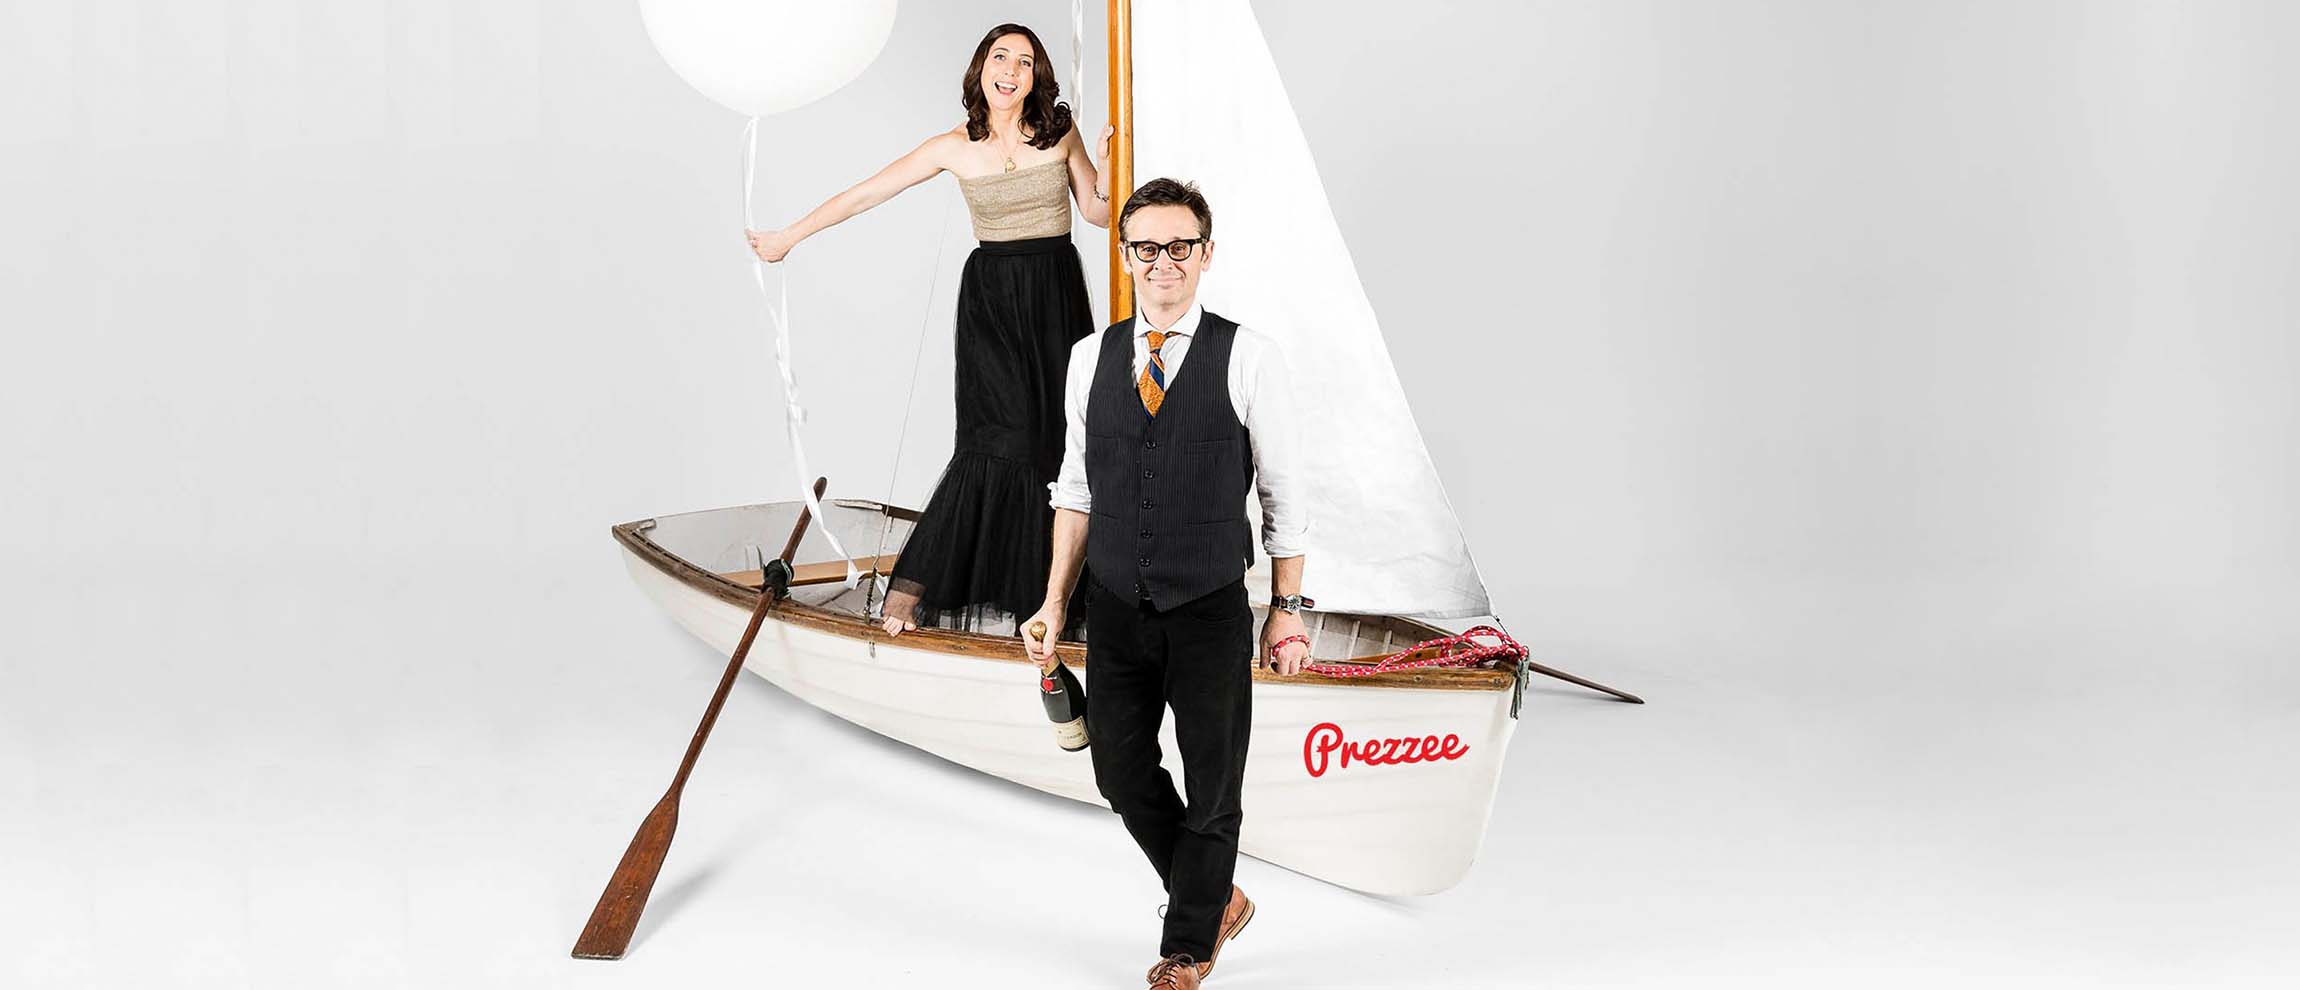 5 minutes with Claire Morris and Matt Hoggett, founders of Prezzee